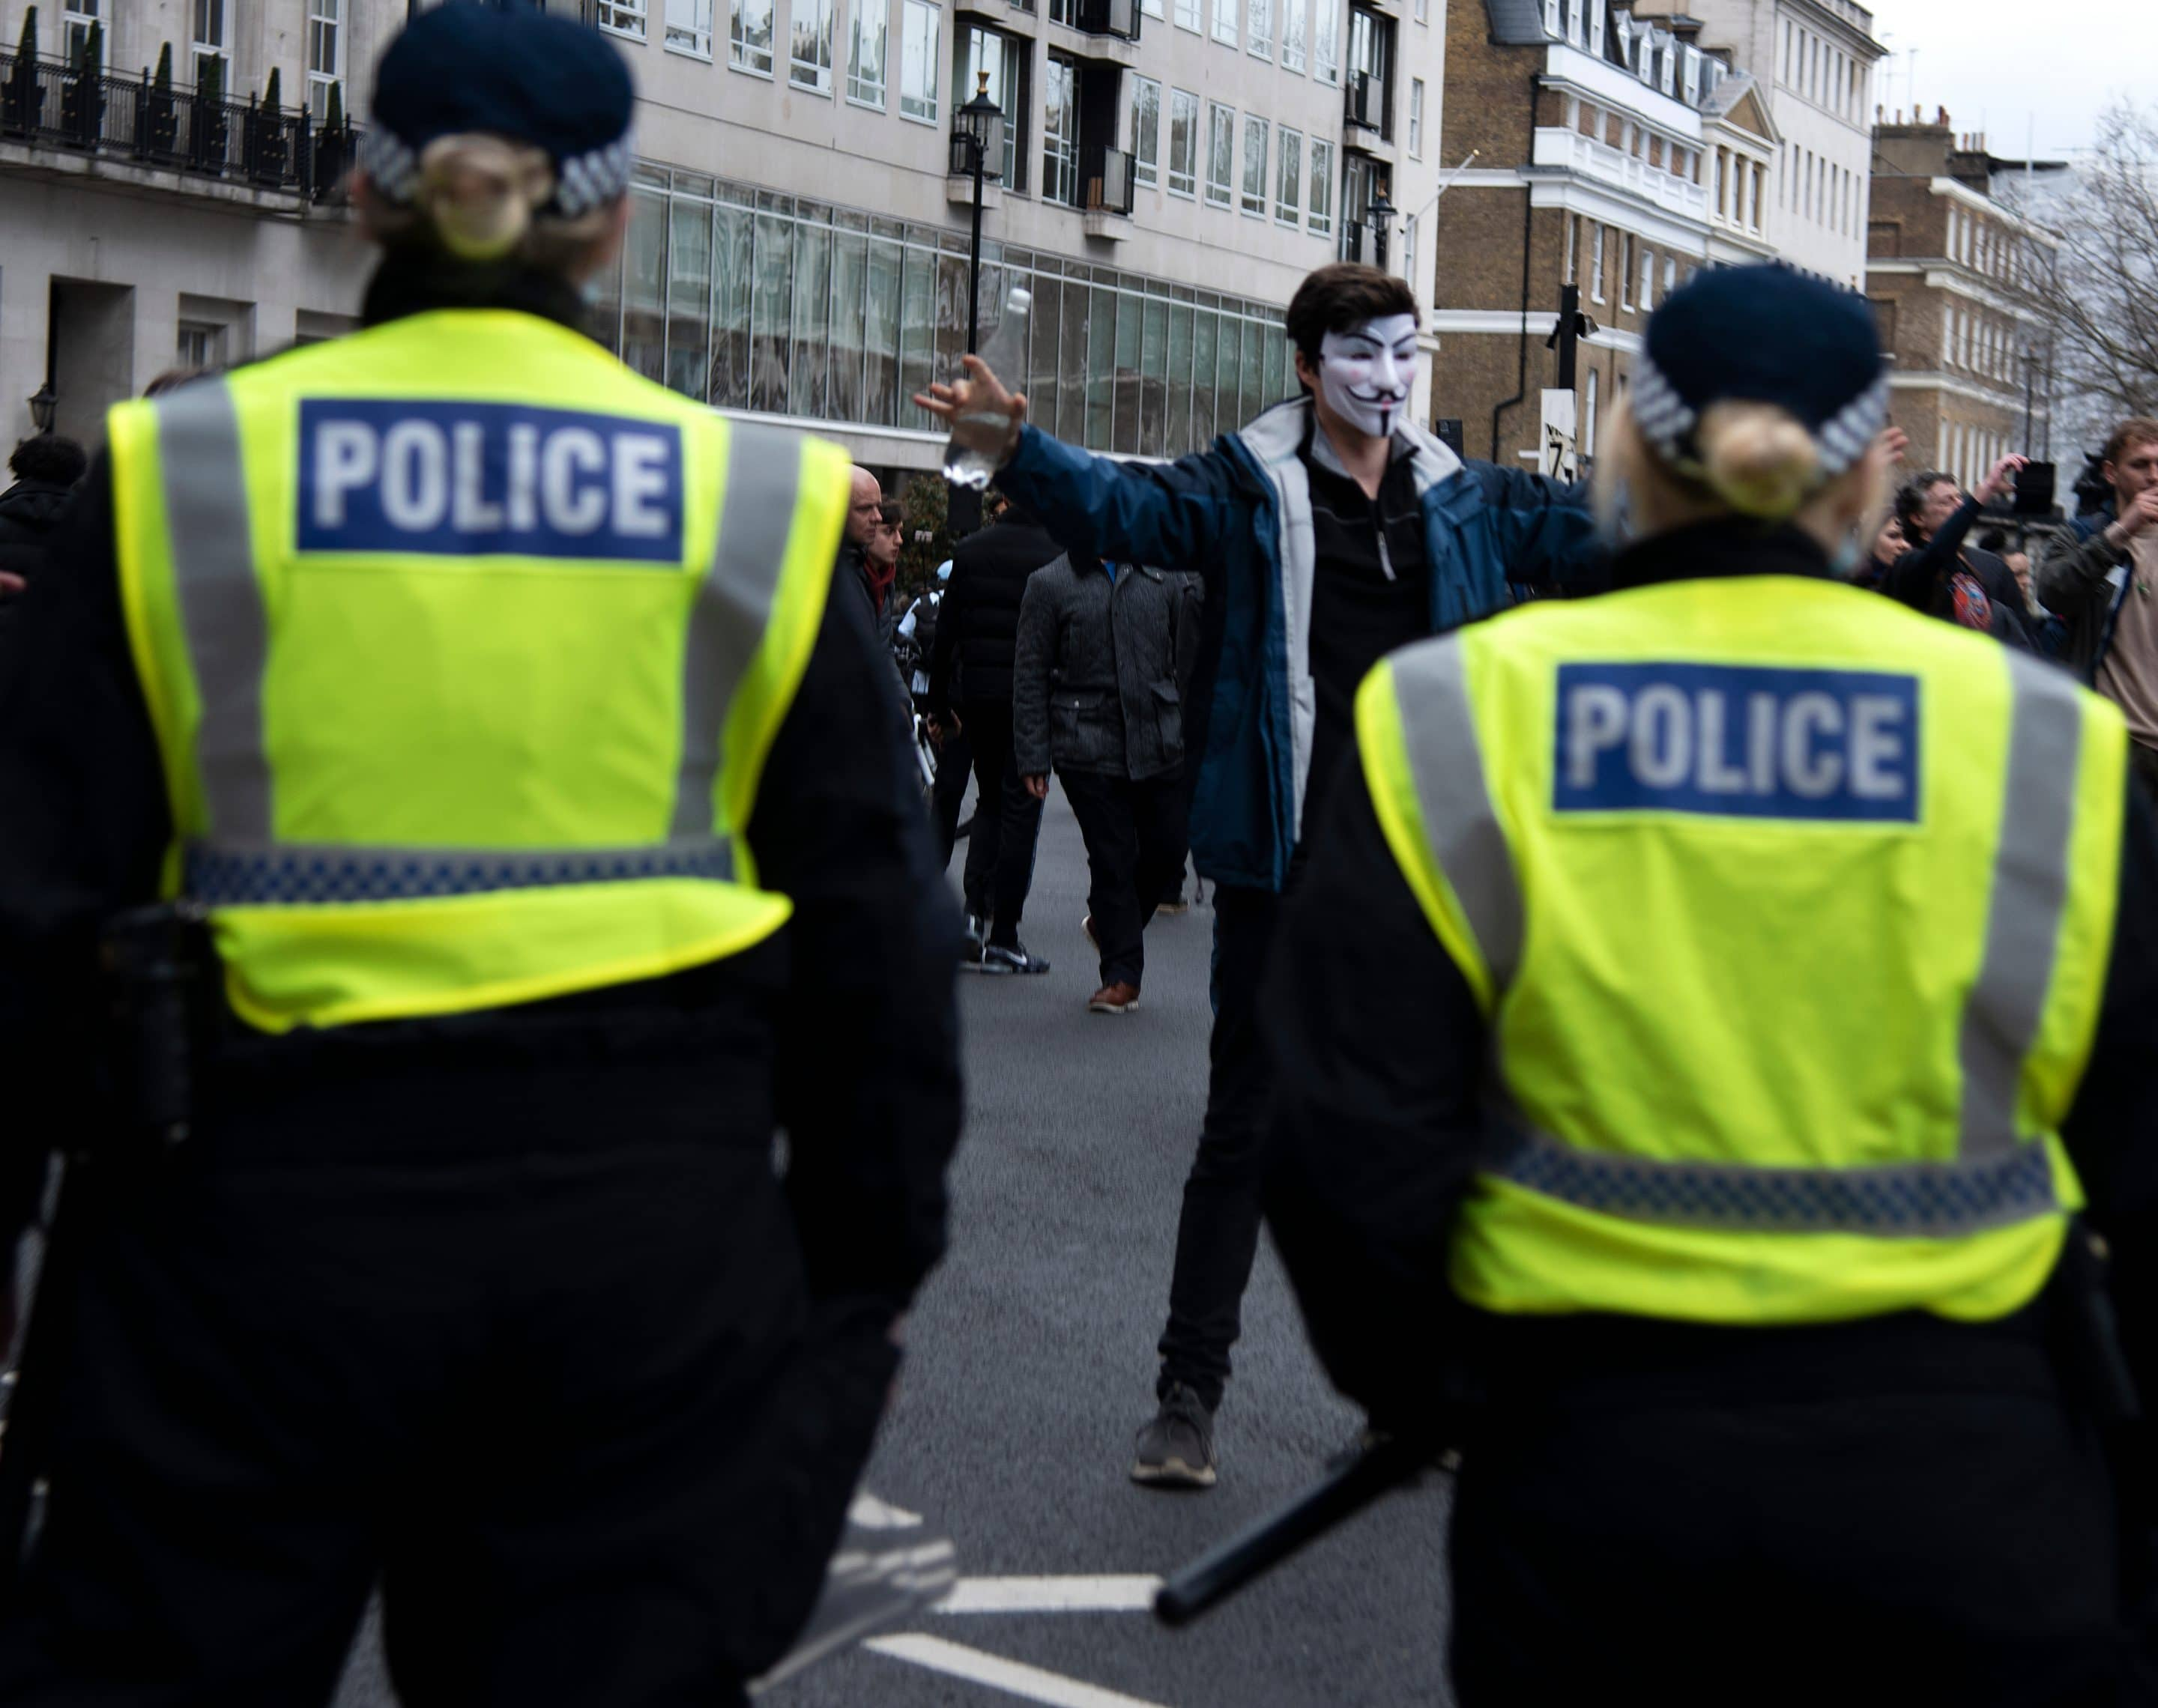 Police Looking at A Public Order Offence